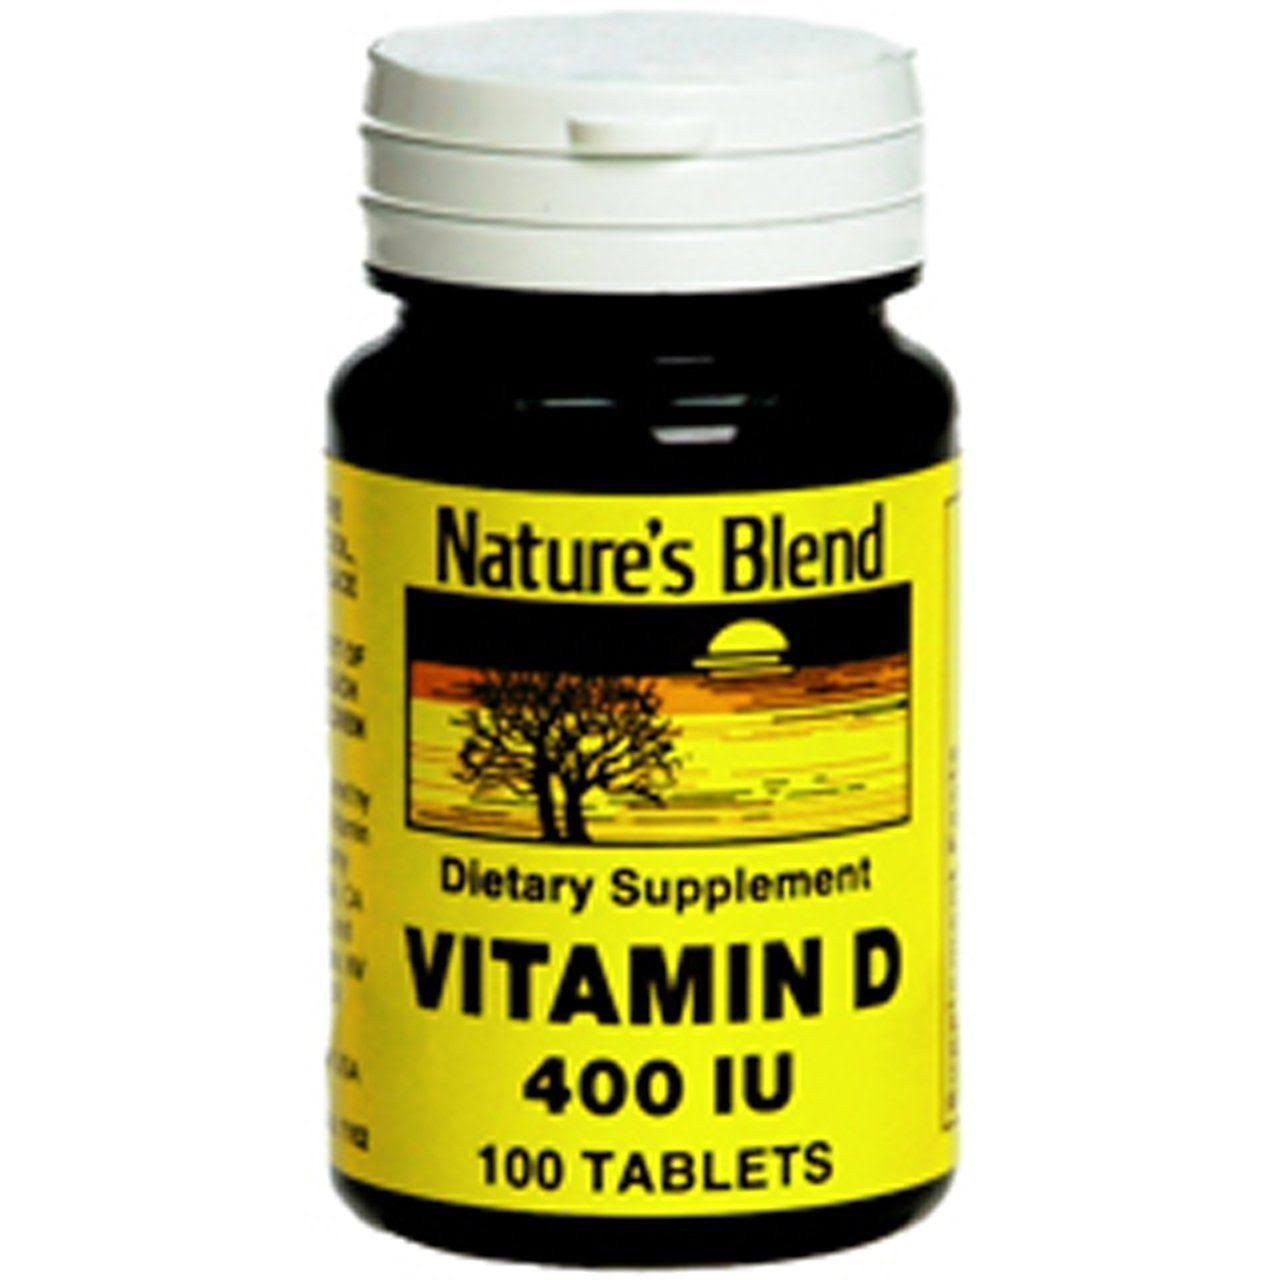 Nature's Blend D3 Vitamin D Dietary Supplement - 400 IU, 100 Tablets